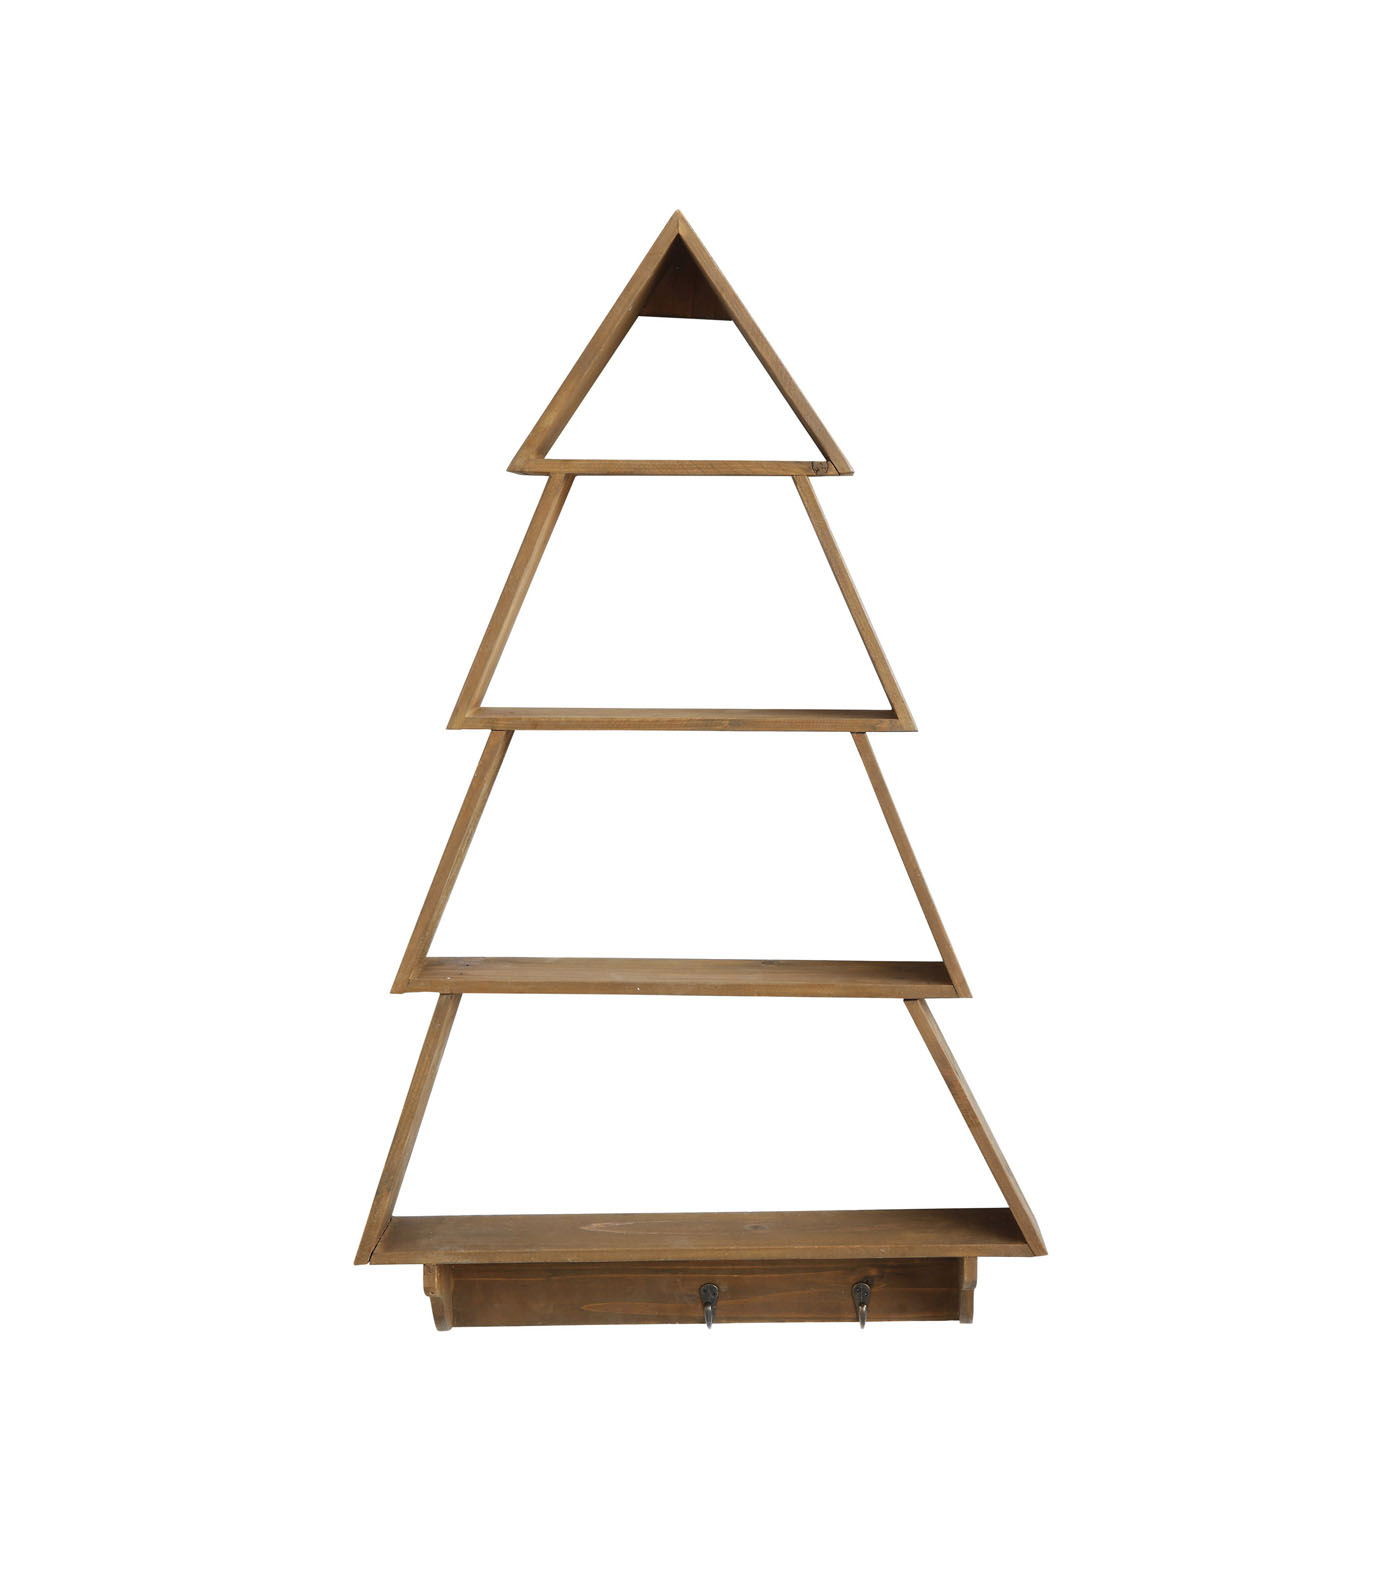 3R Studios 3 Hook Fir Wood Tree Shaped Wall Shelf